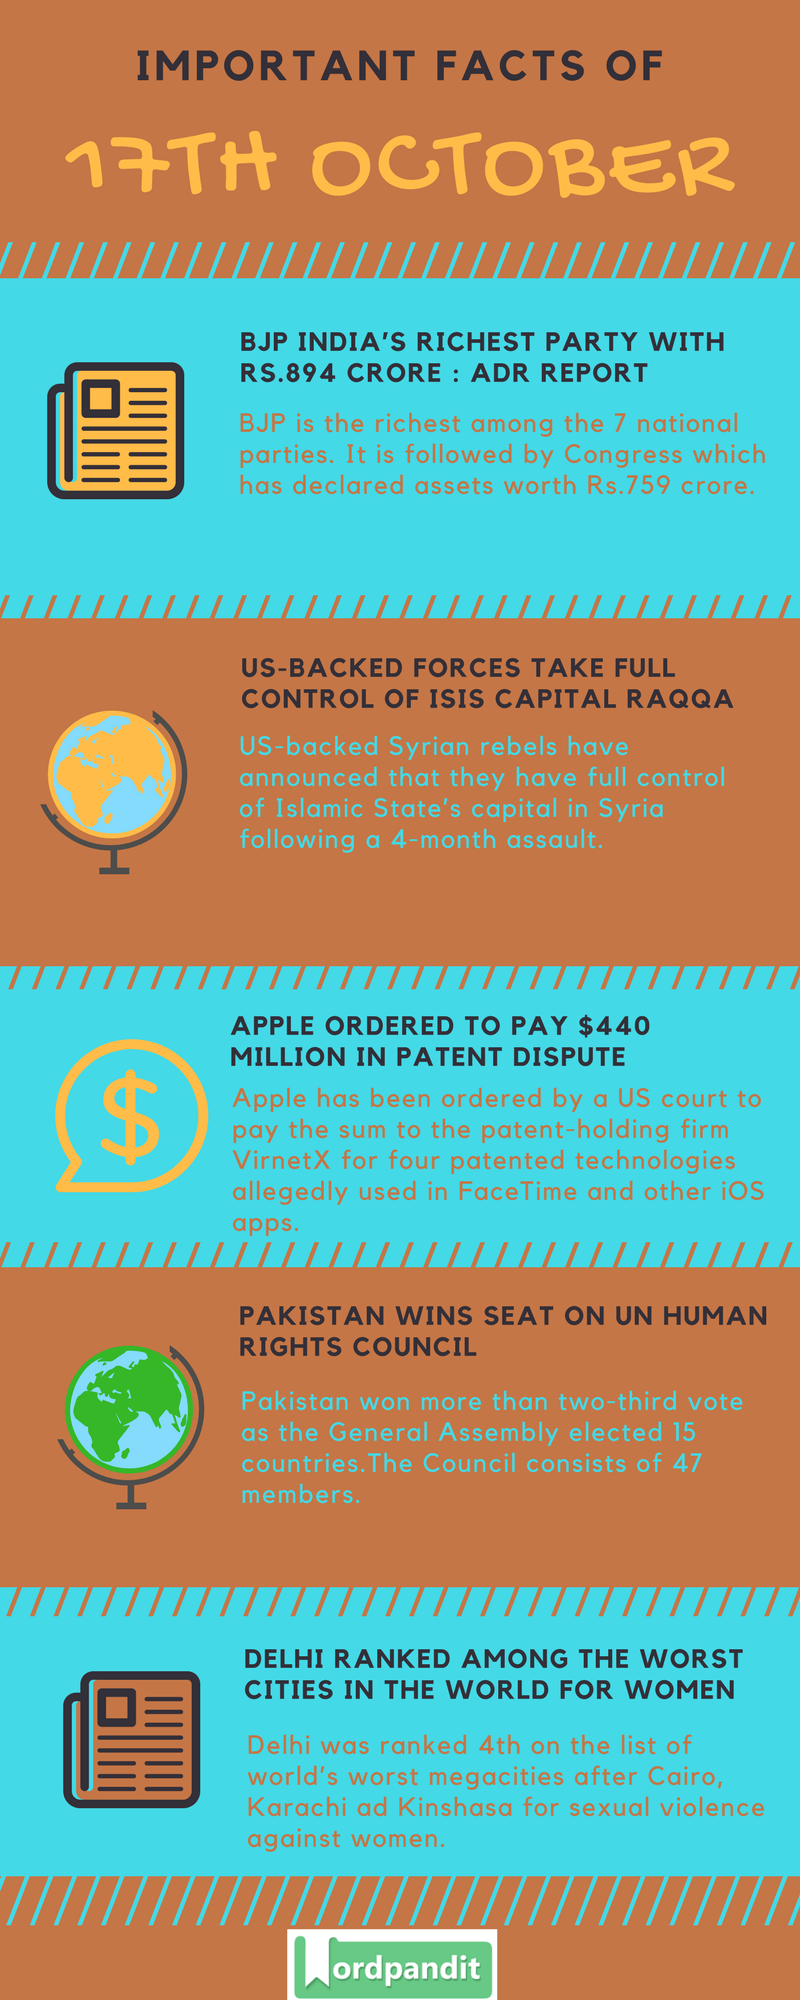 Daily-Current-Affairs-17-october-2017-Current-Affairs-Quiz-october-17-2017-Current-Affairs-Infographic